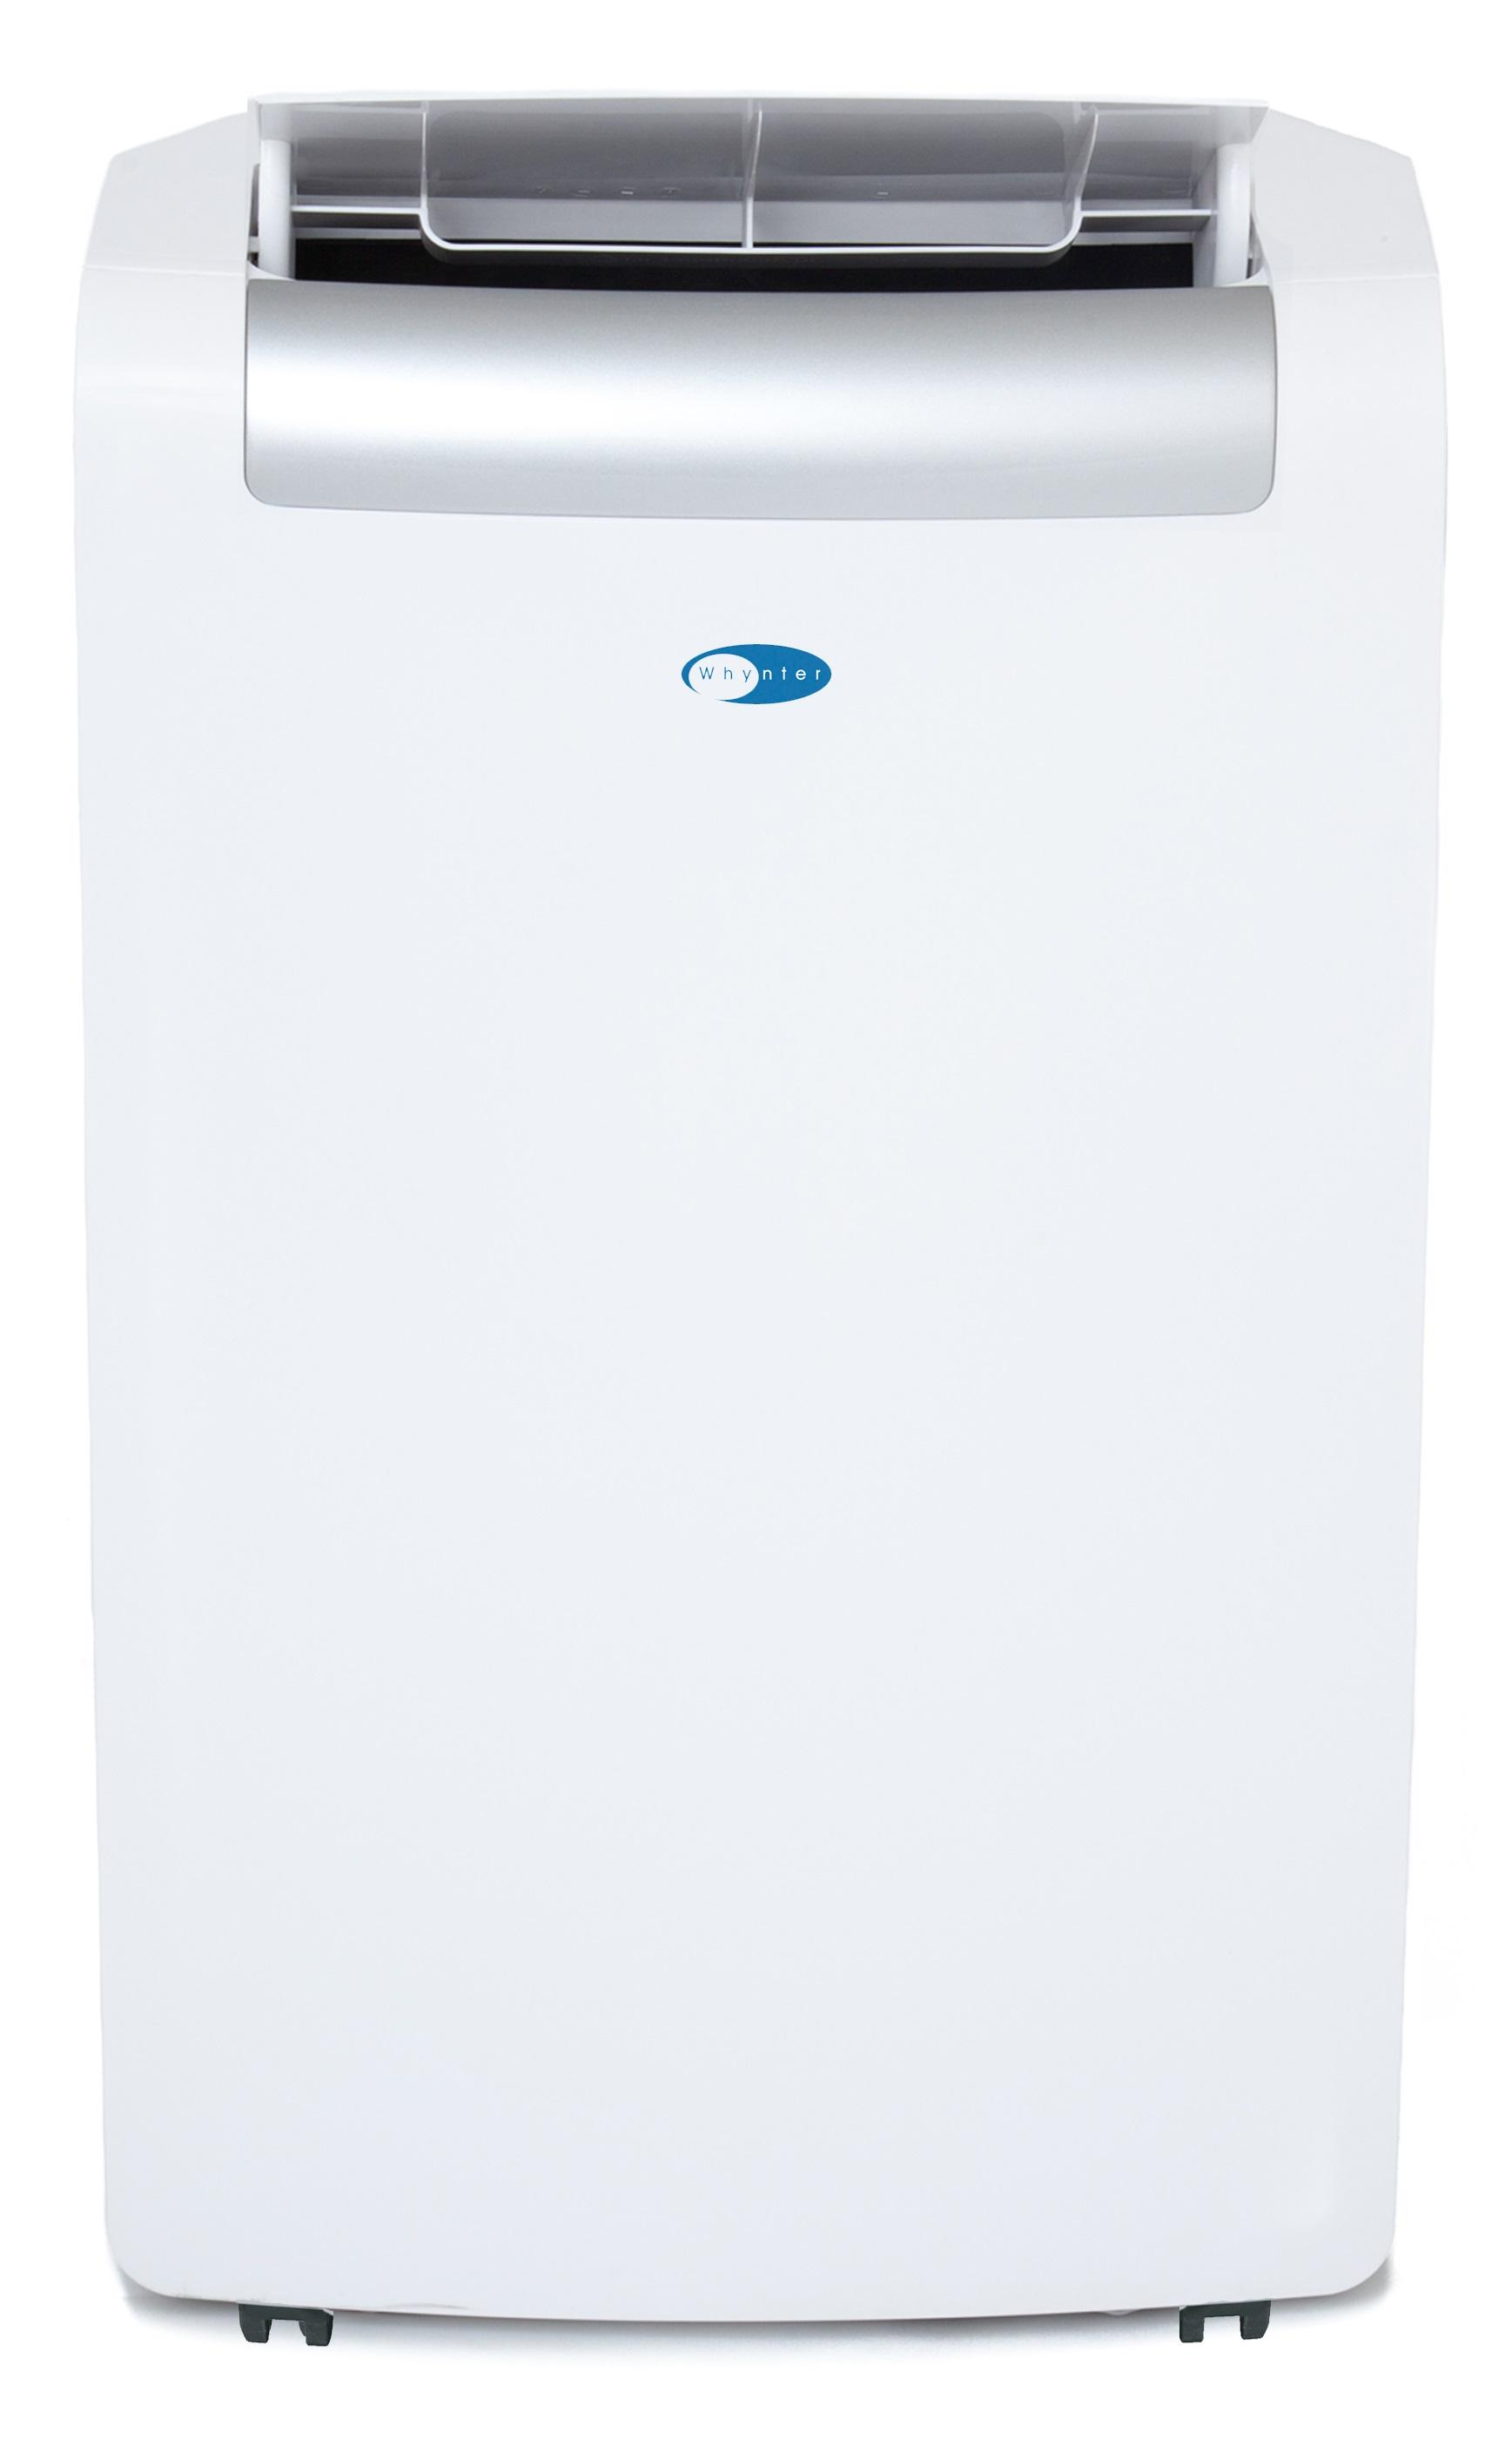 #2077AB ARC 148MHP Most Effective 12225 High Btu Portable Air Conditioner pictures with 1737x2817 px on helpvideos.info - Air Conditioners, Air Coolers and more